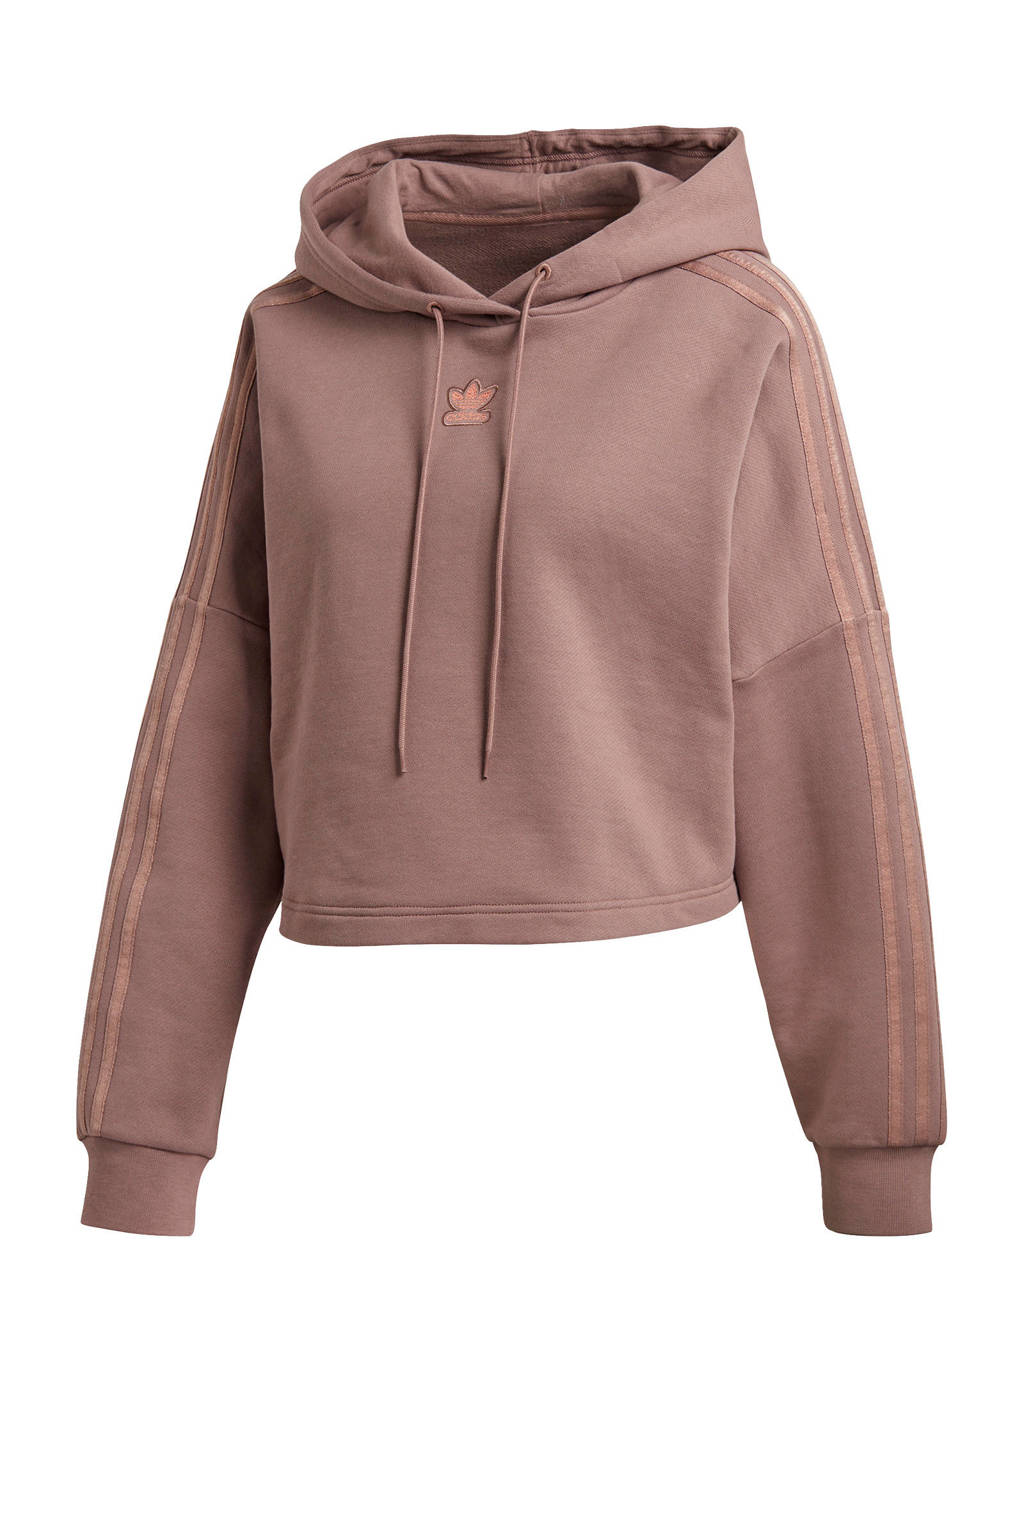 adidas Originals New Neutral cropped hoodie taupe, Taupe